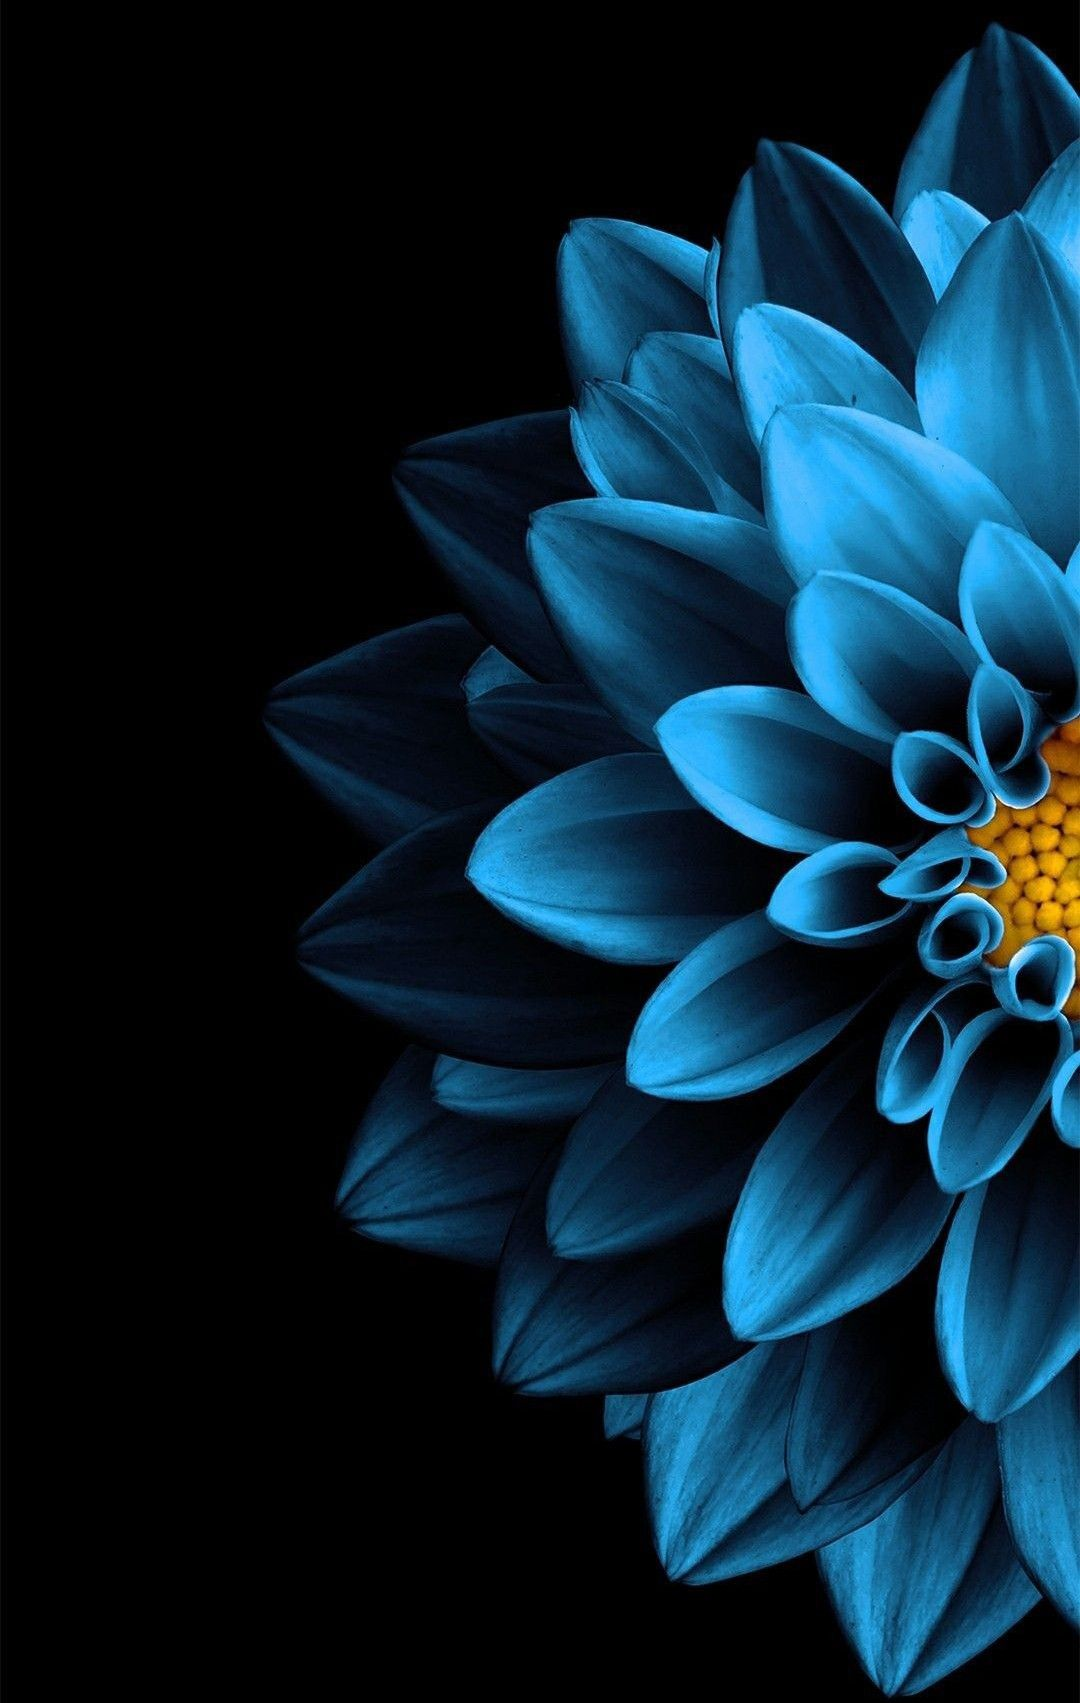 Blue Flower Black Background Wallpaper